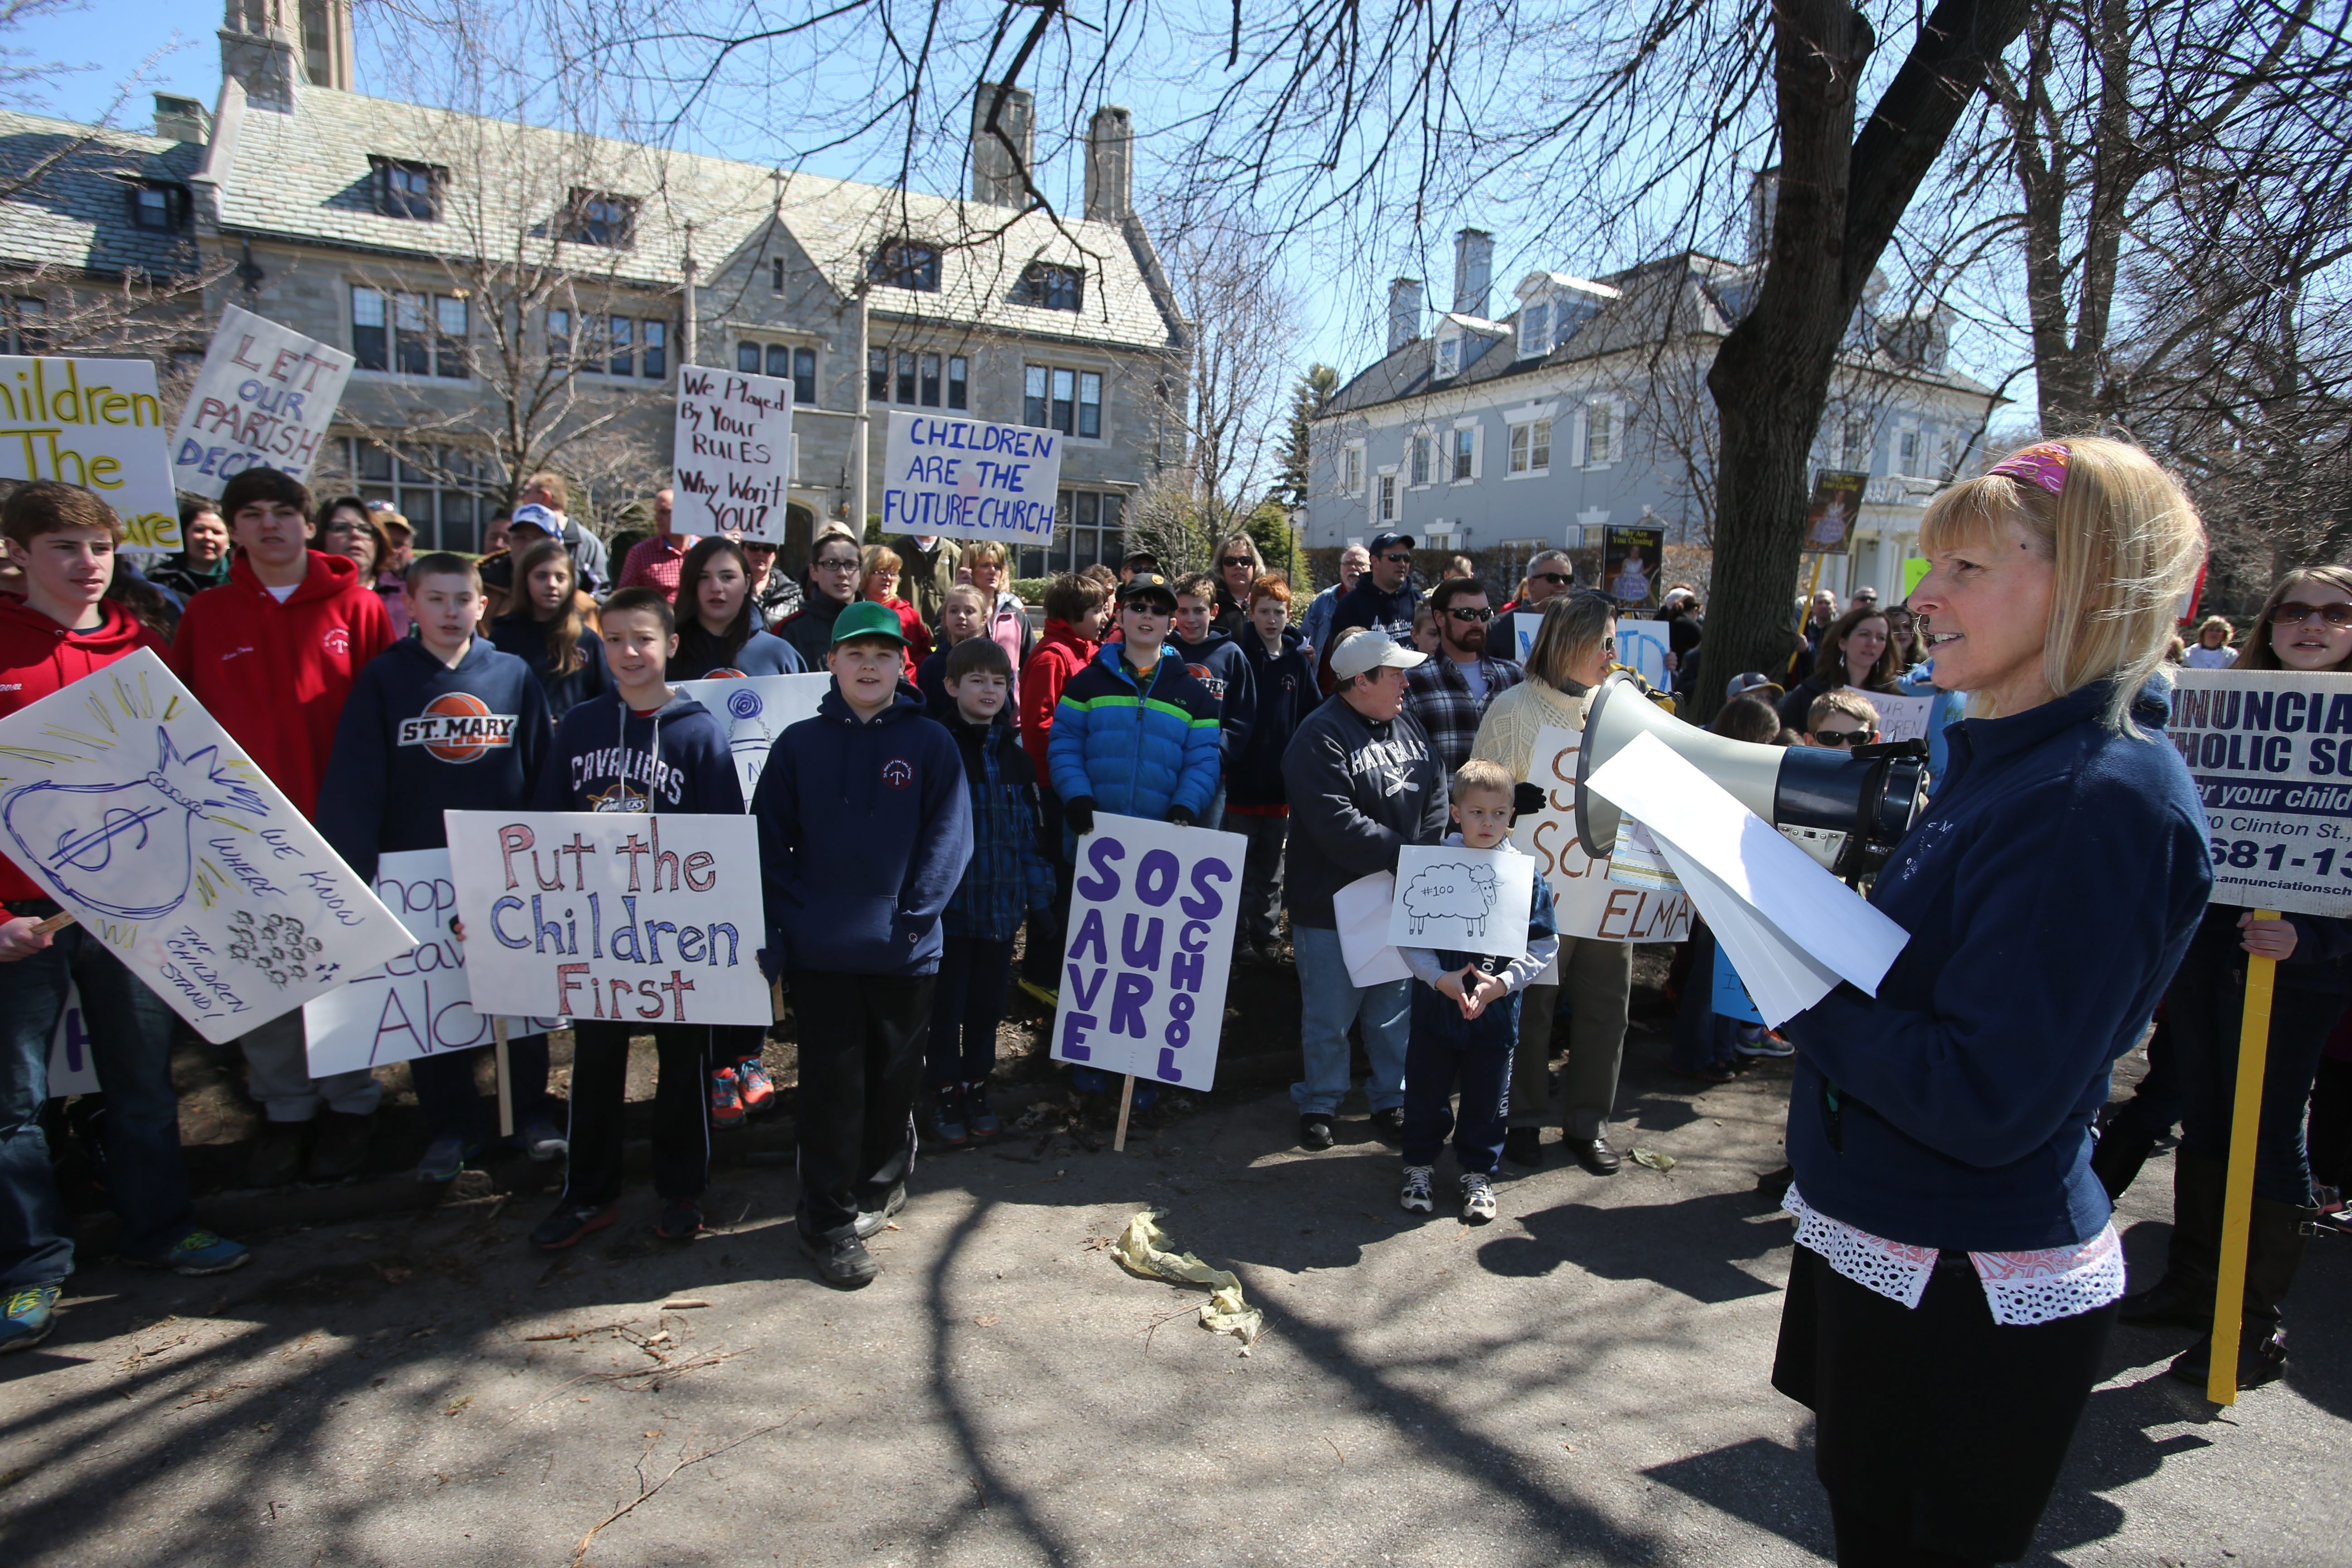 Chris Herzog, foreground, of St. Mary of the Lake Parish in Hamburg, leads about 120 protesters outside Bishop Richard J. Malone's mansion on Oakland Place in Buffalo as the diocese is taken to task for not letting parishioners have enough input on school closures.